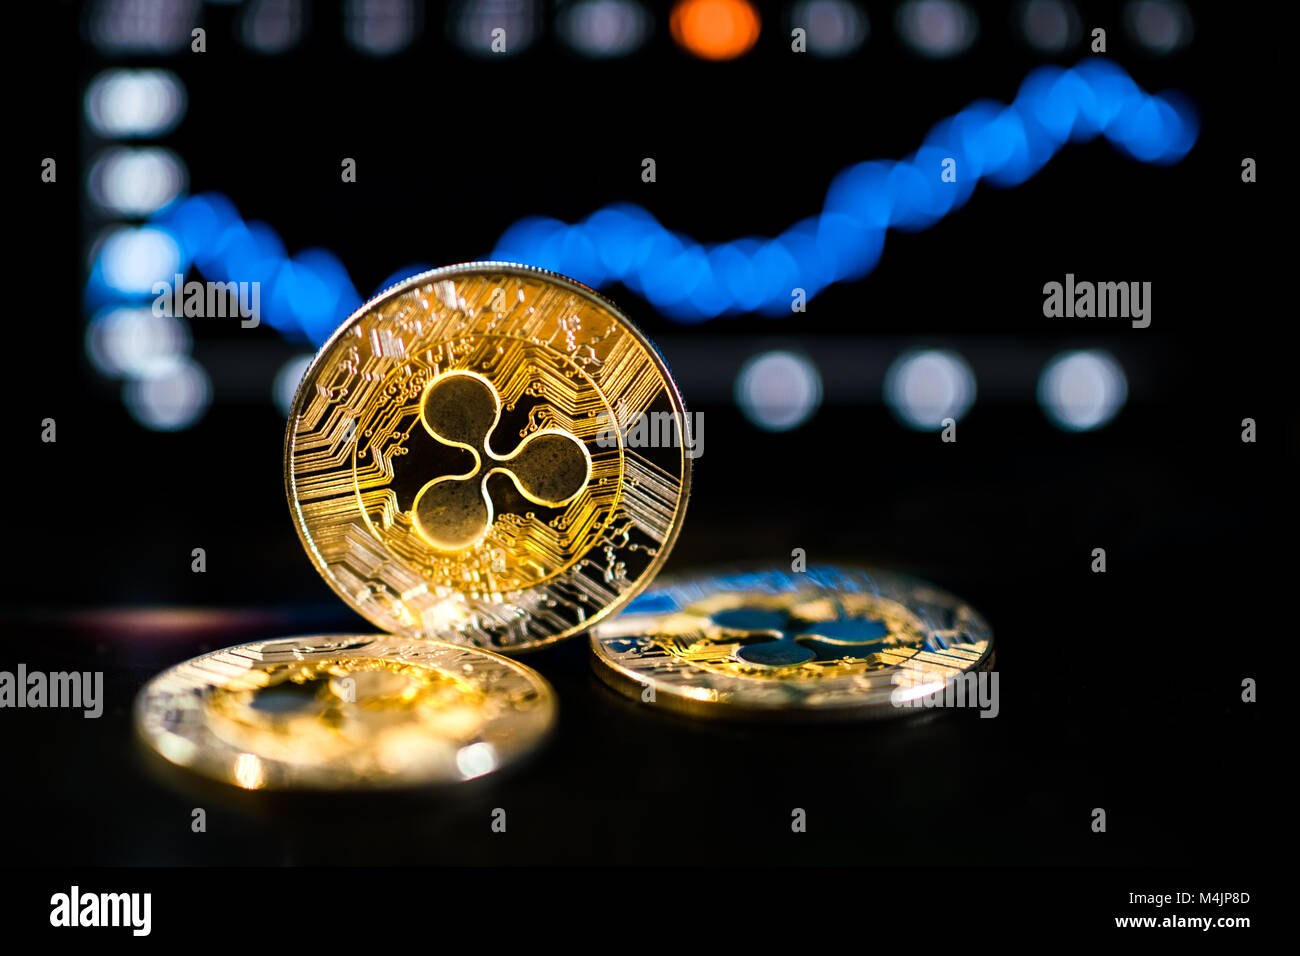 Ripple XRP crypto currency showing bullish signs on market with chart going up - Stock Image